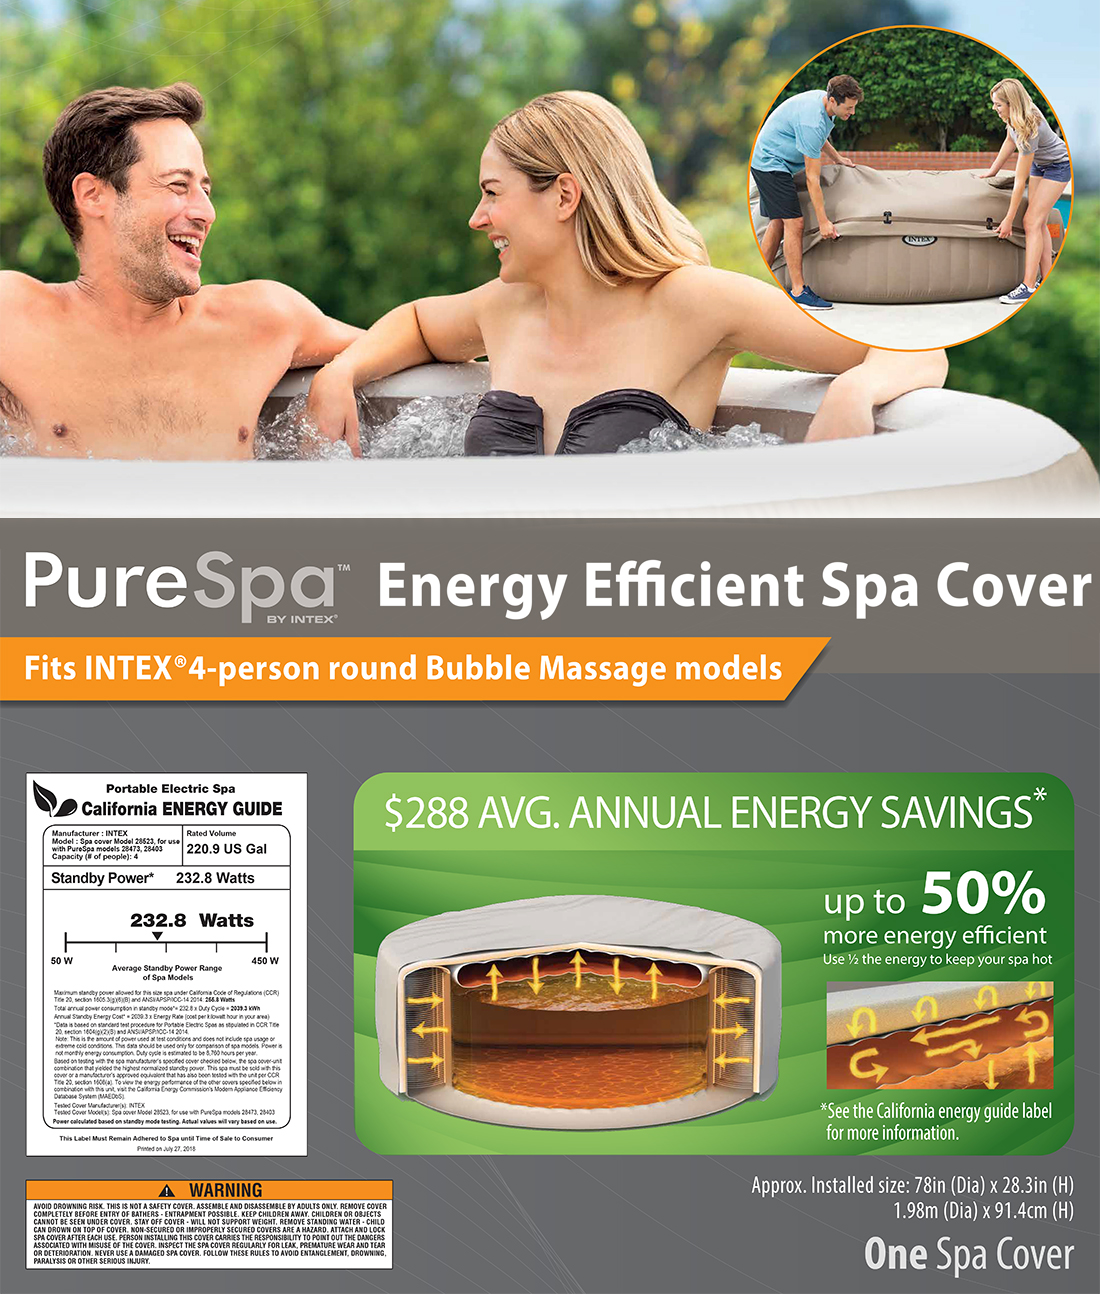 Energy Efficient Spa Cover